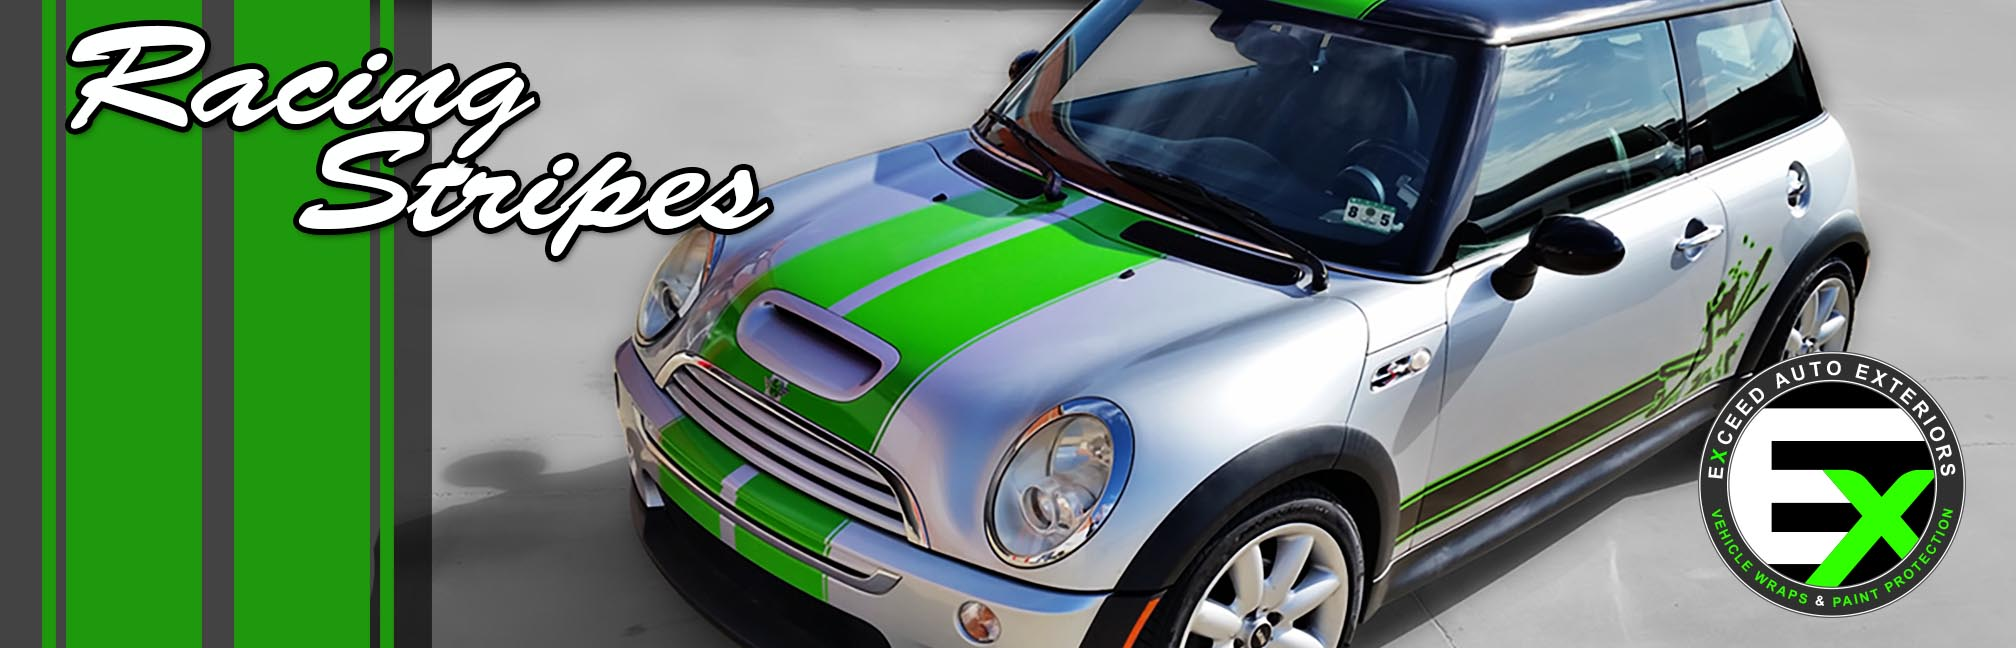 vehiclewrapslewisvilledallas